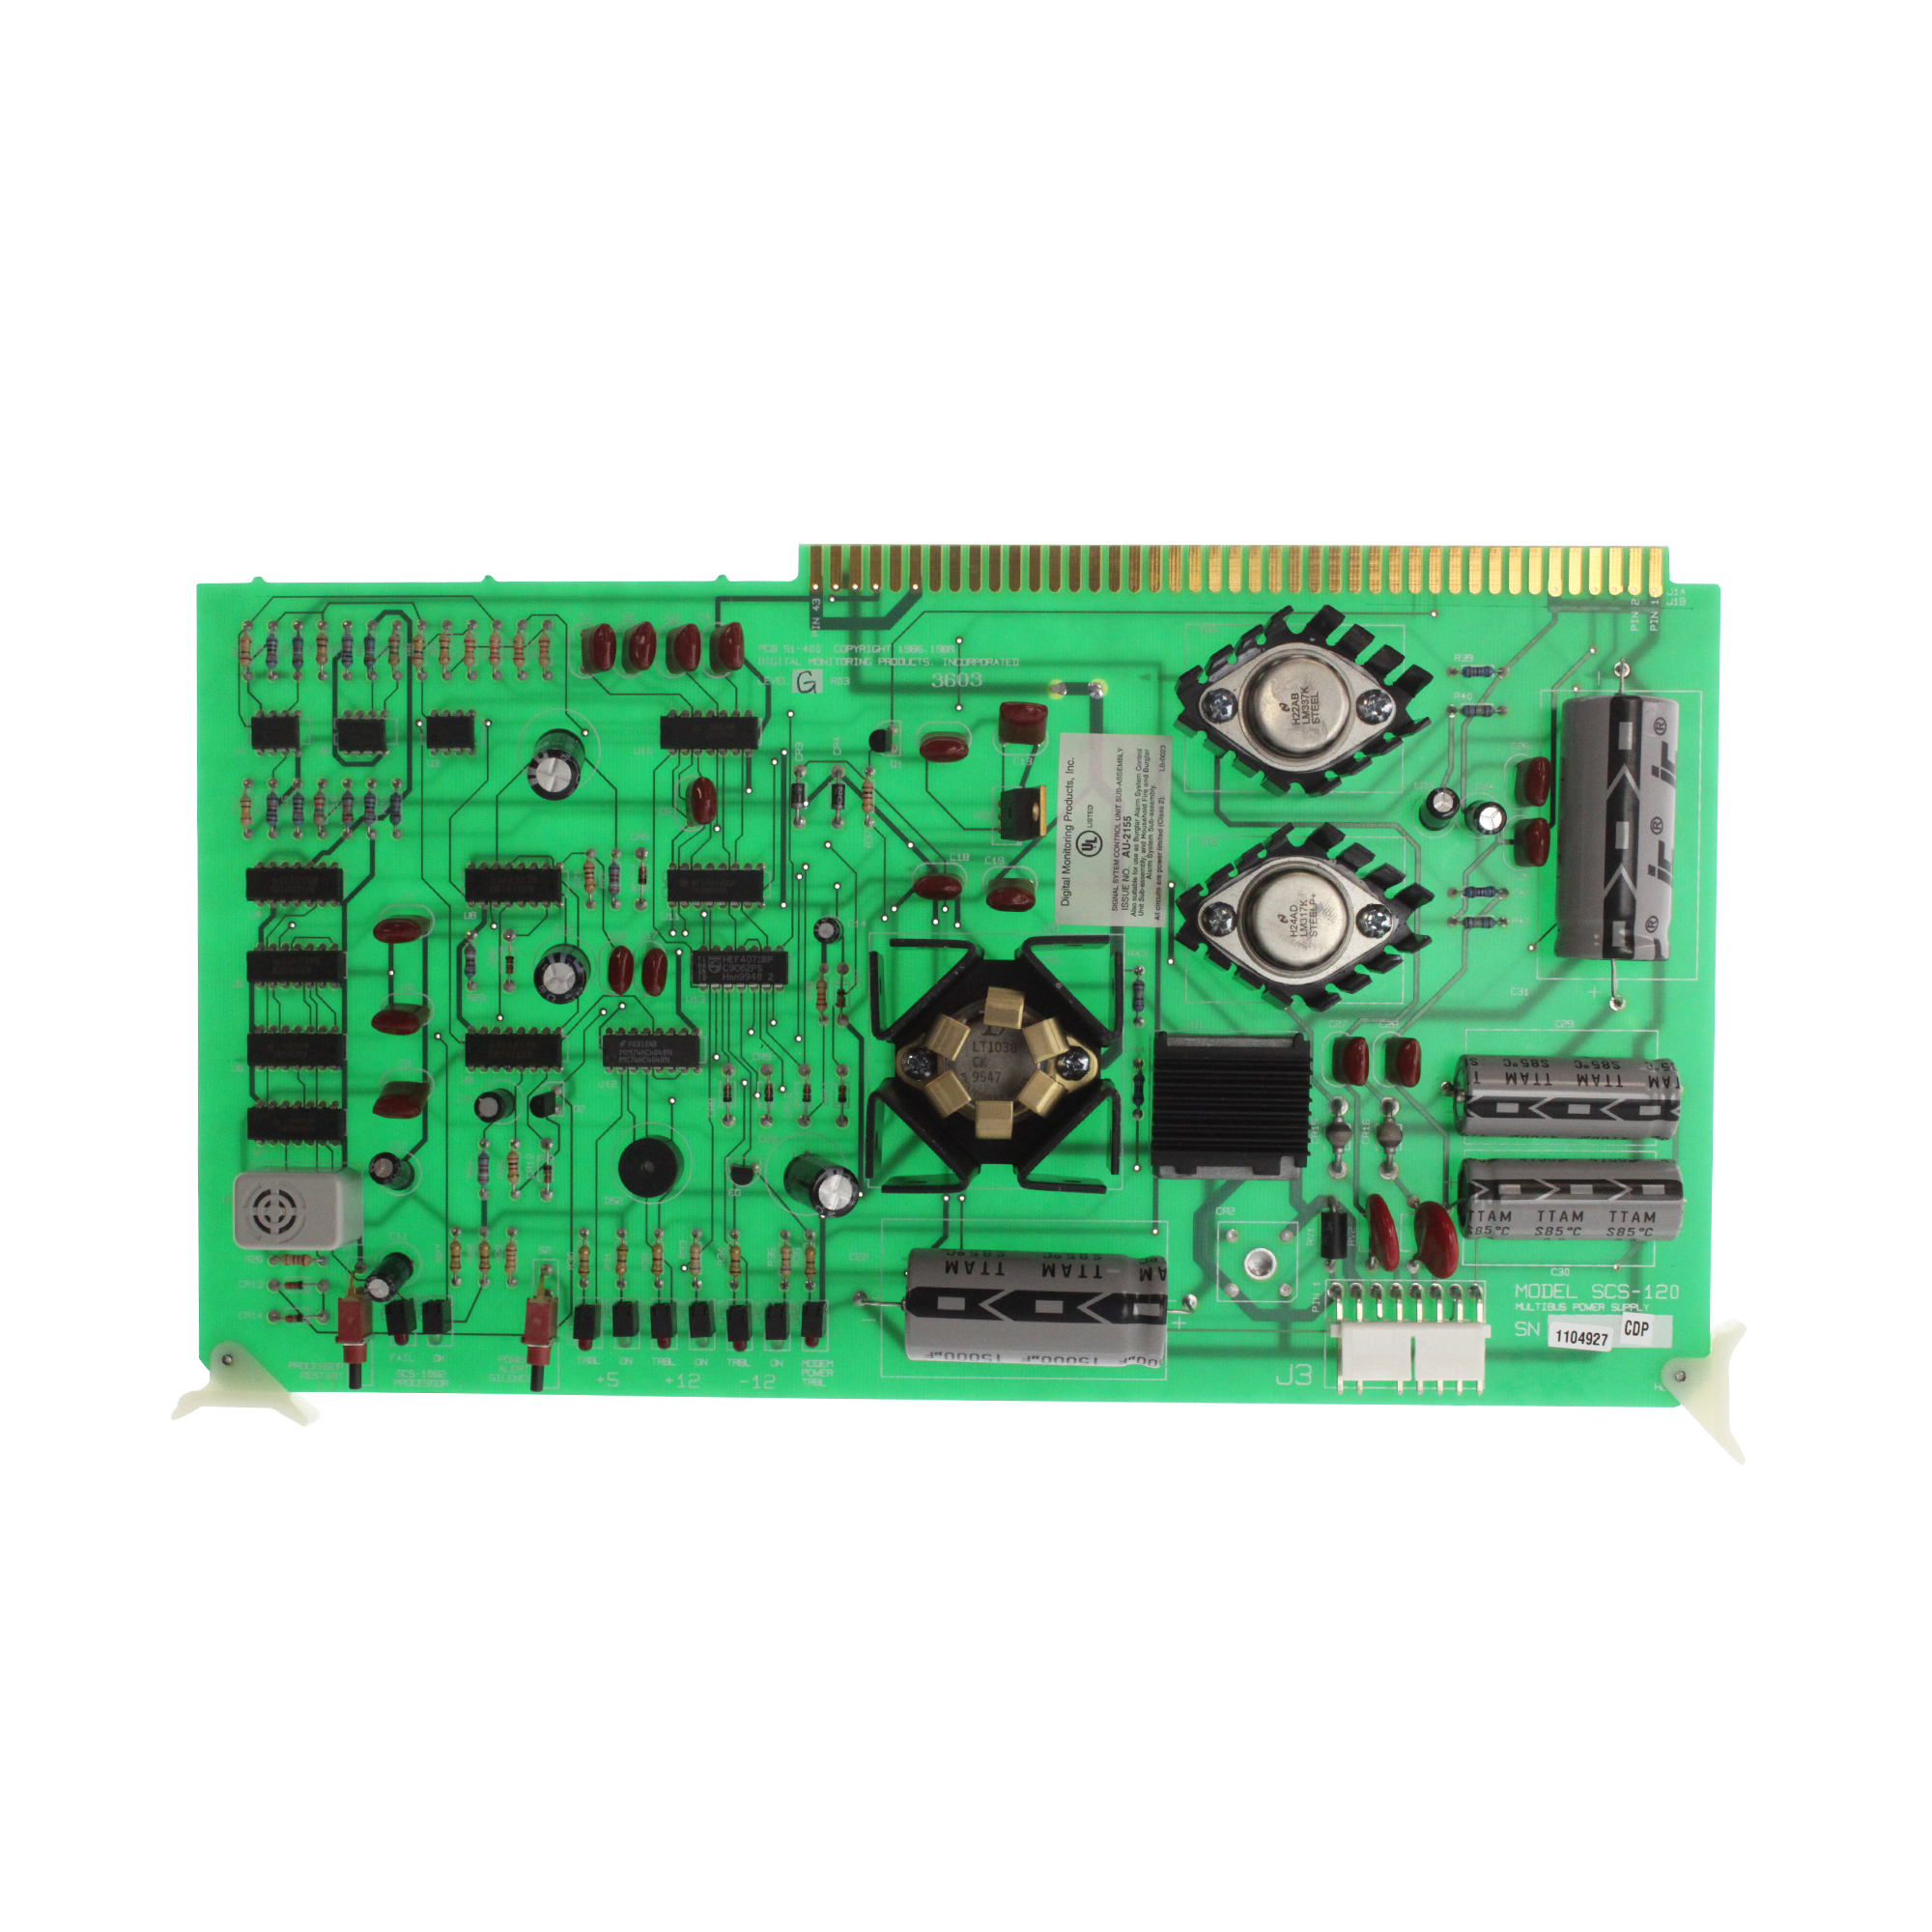 Digital Monitoring Products SCS-120 Multibus Power Supply Card for the SCS-1062